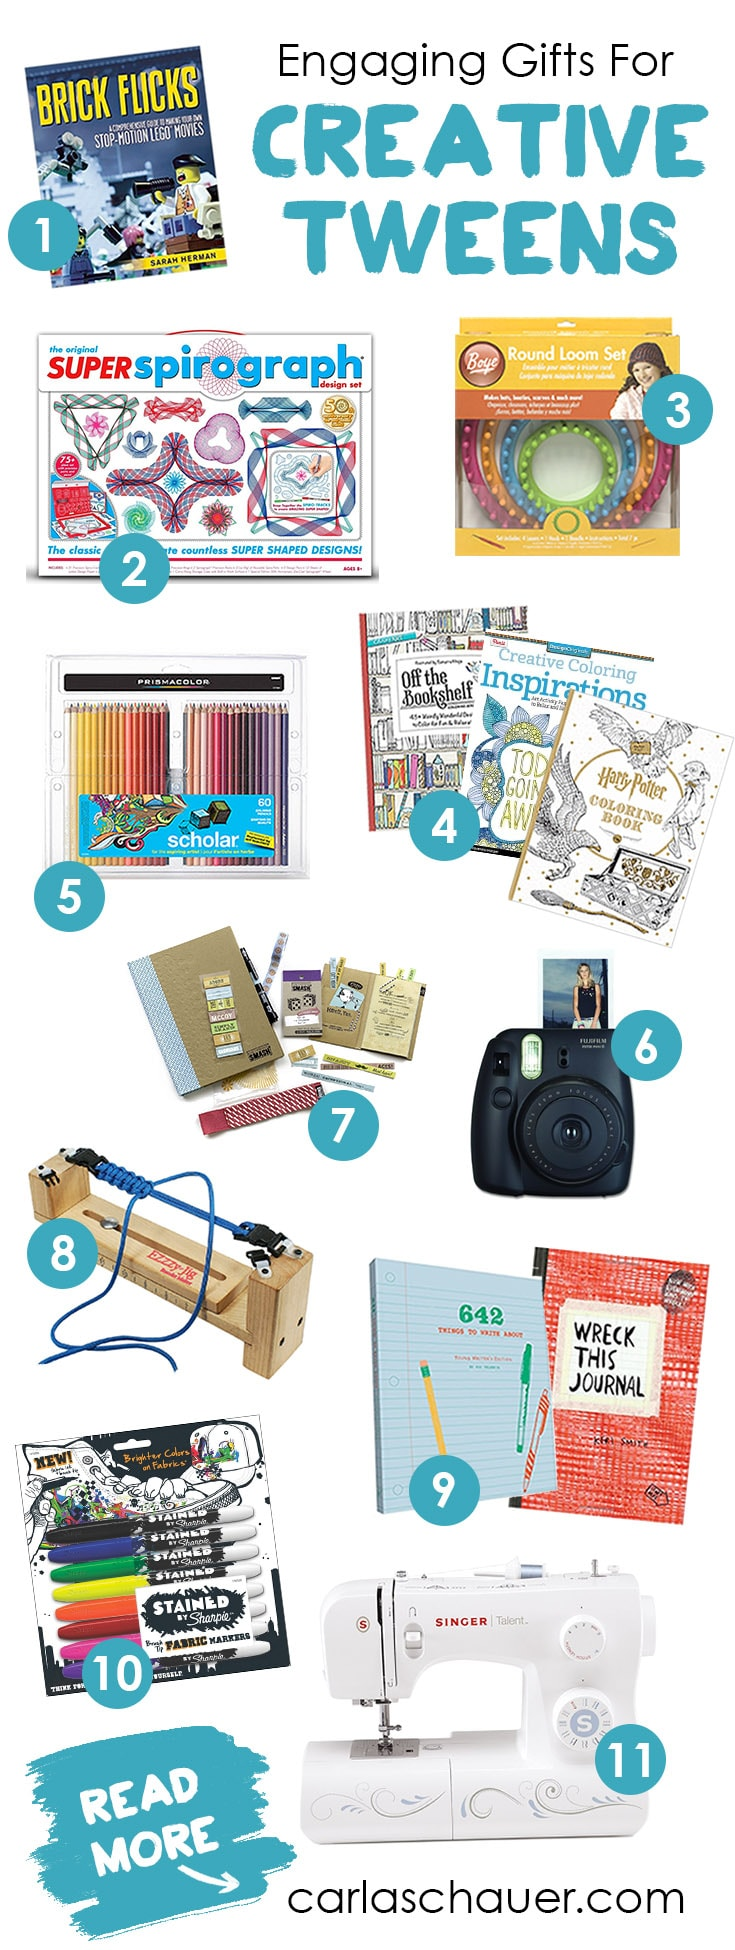 Toys For Creative Tweens : Find engaging gifts for creative tweens carla schauer